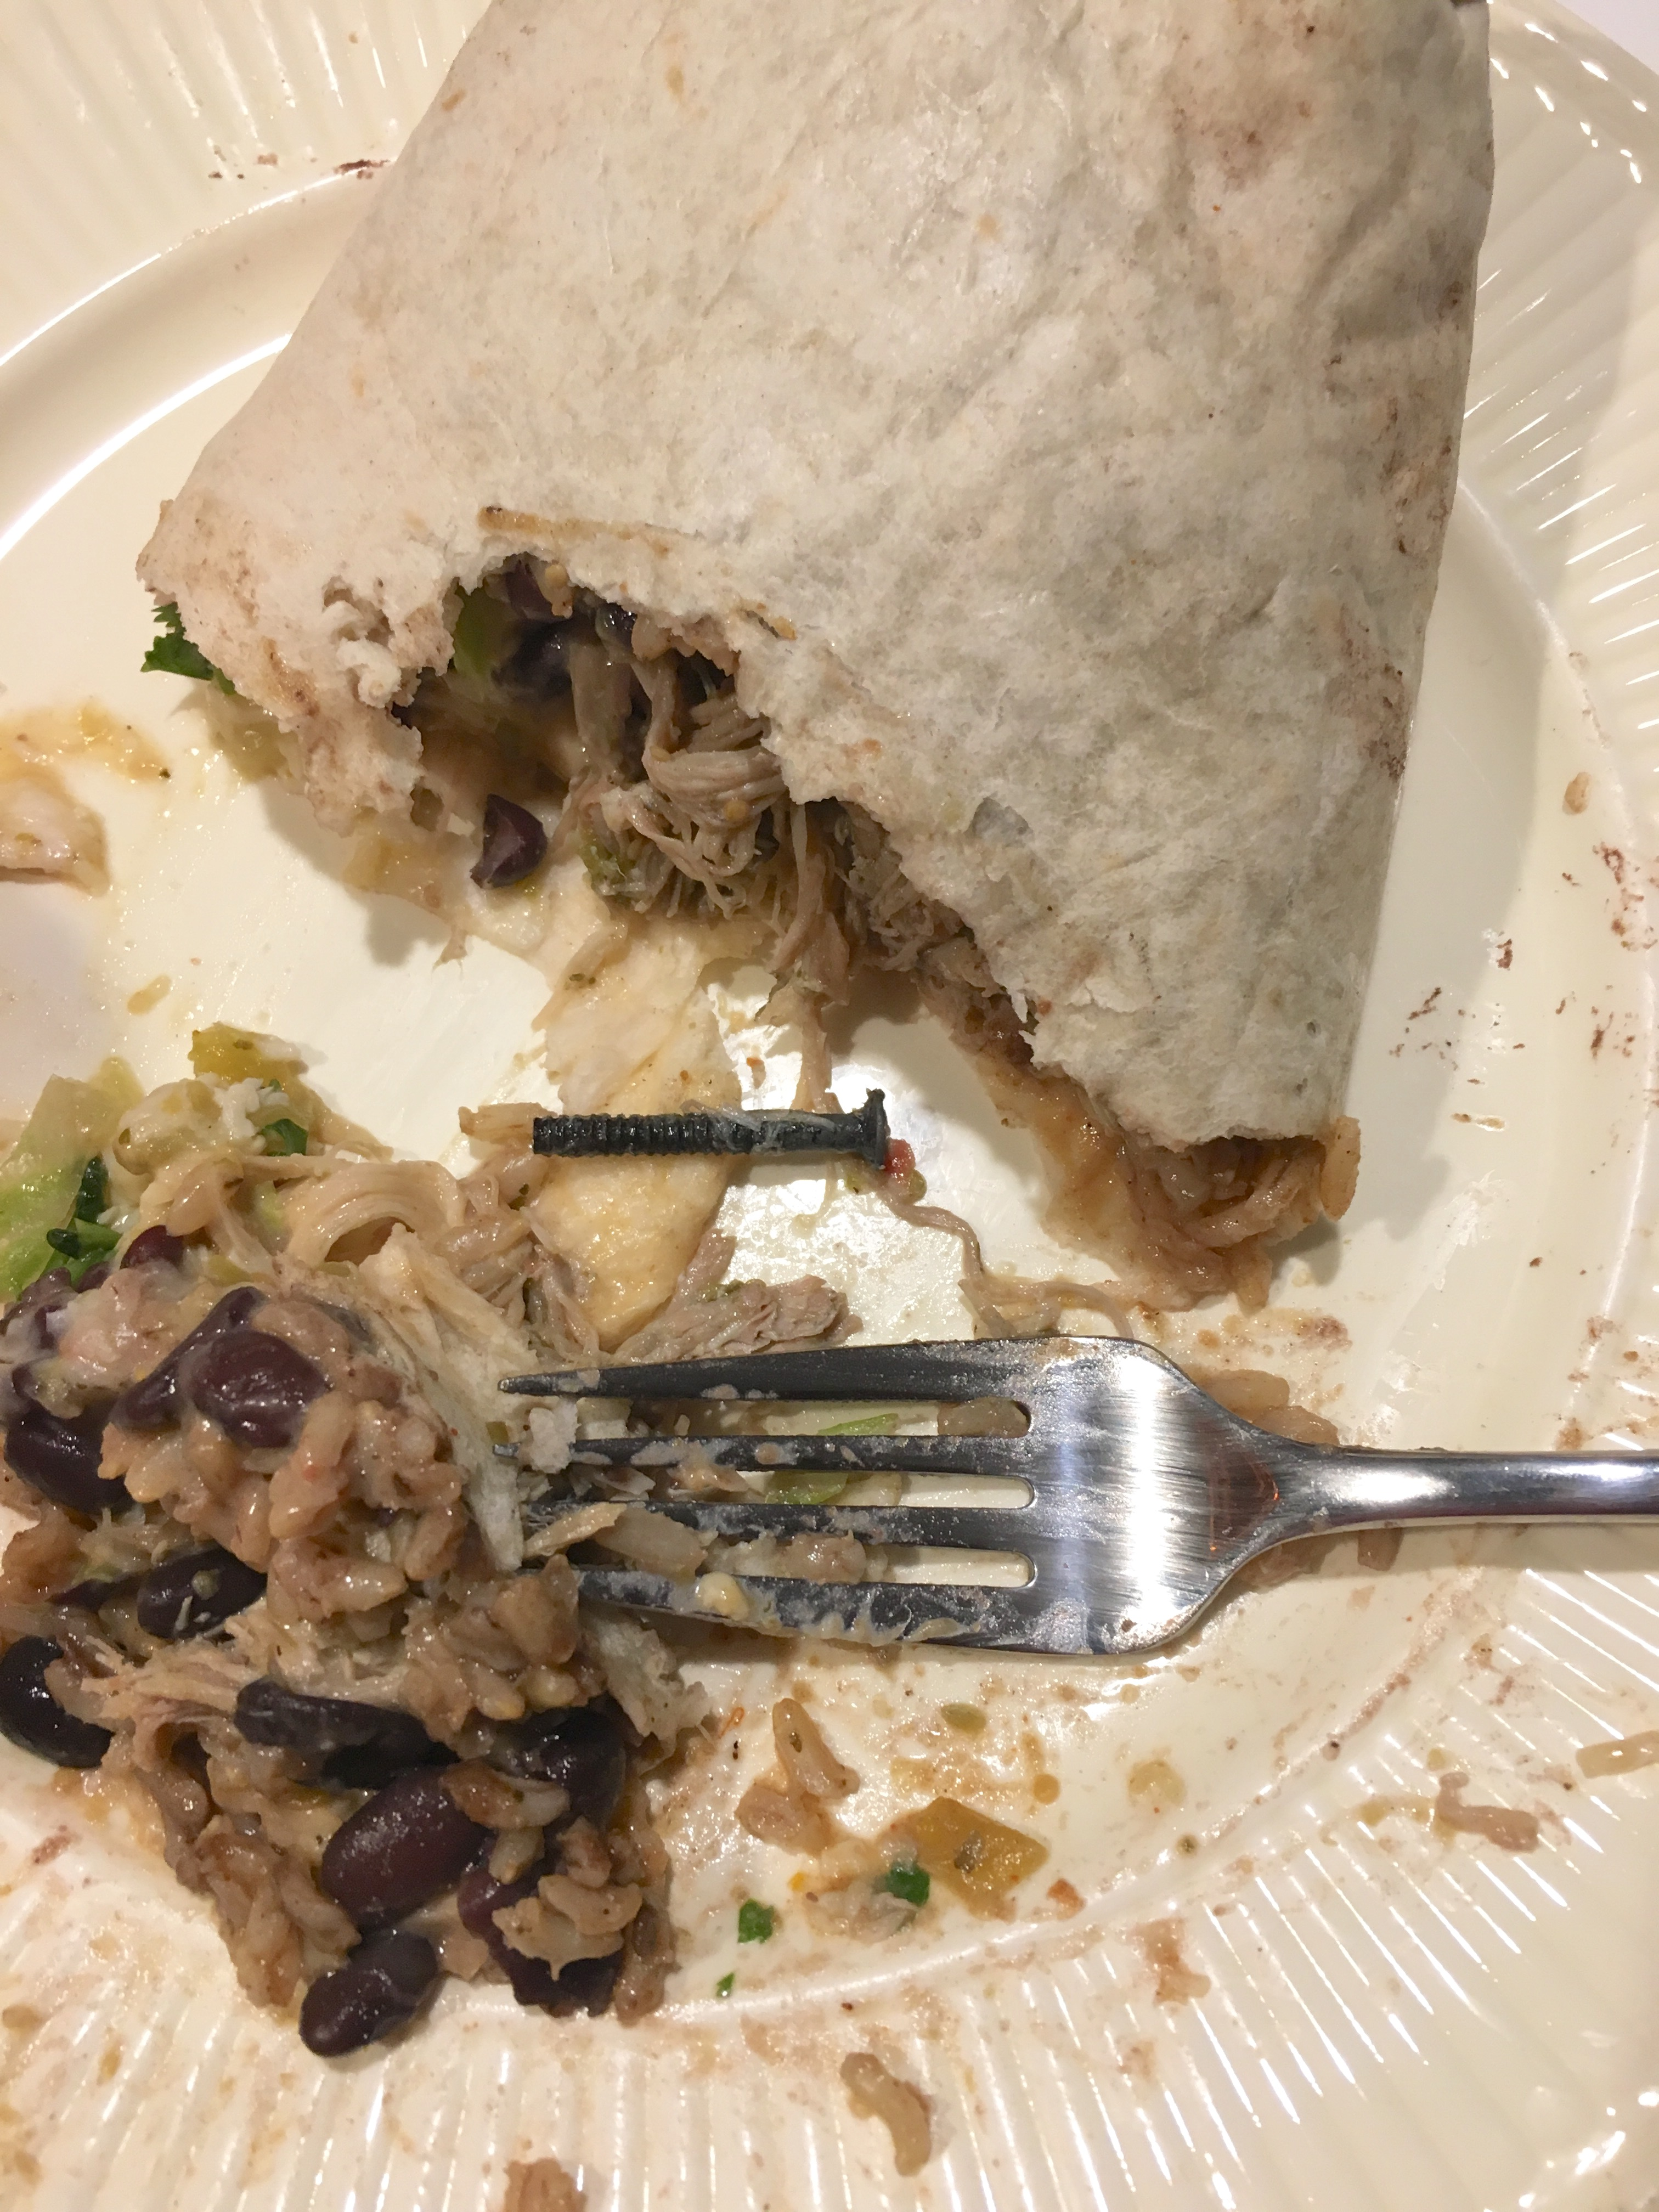 Burrito screw